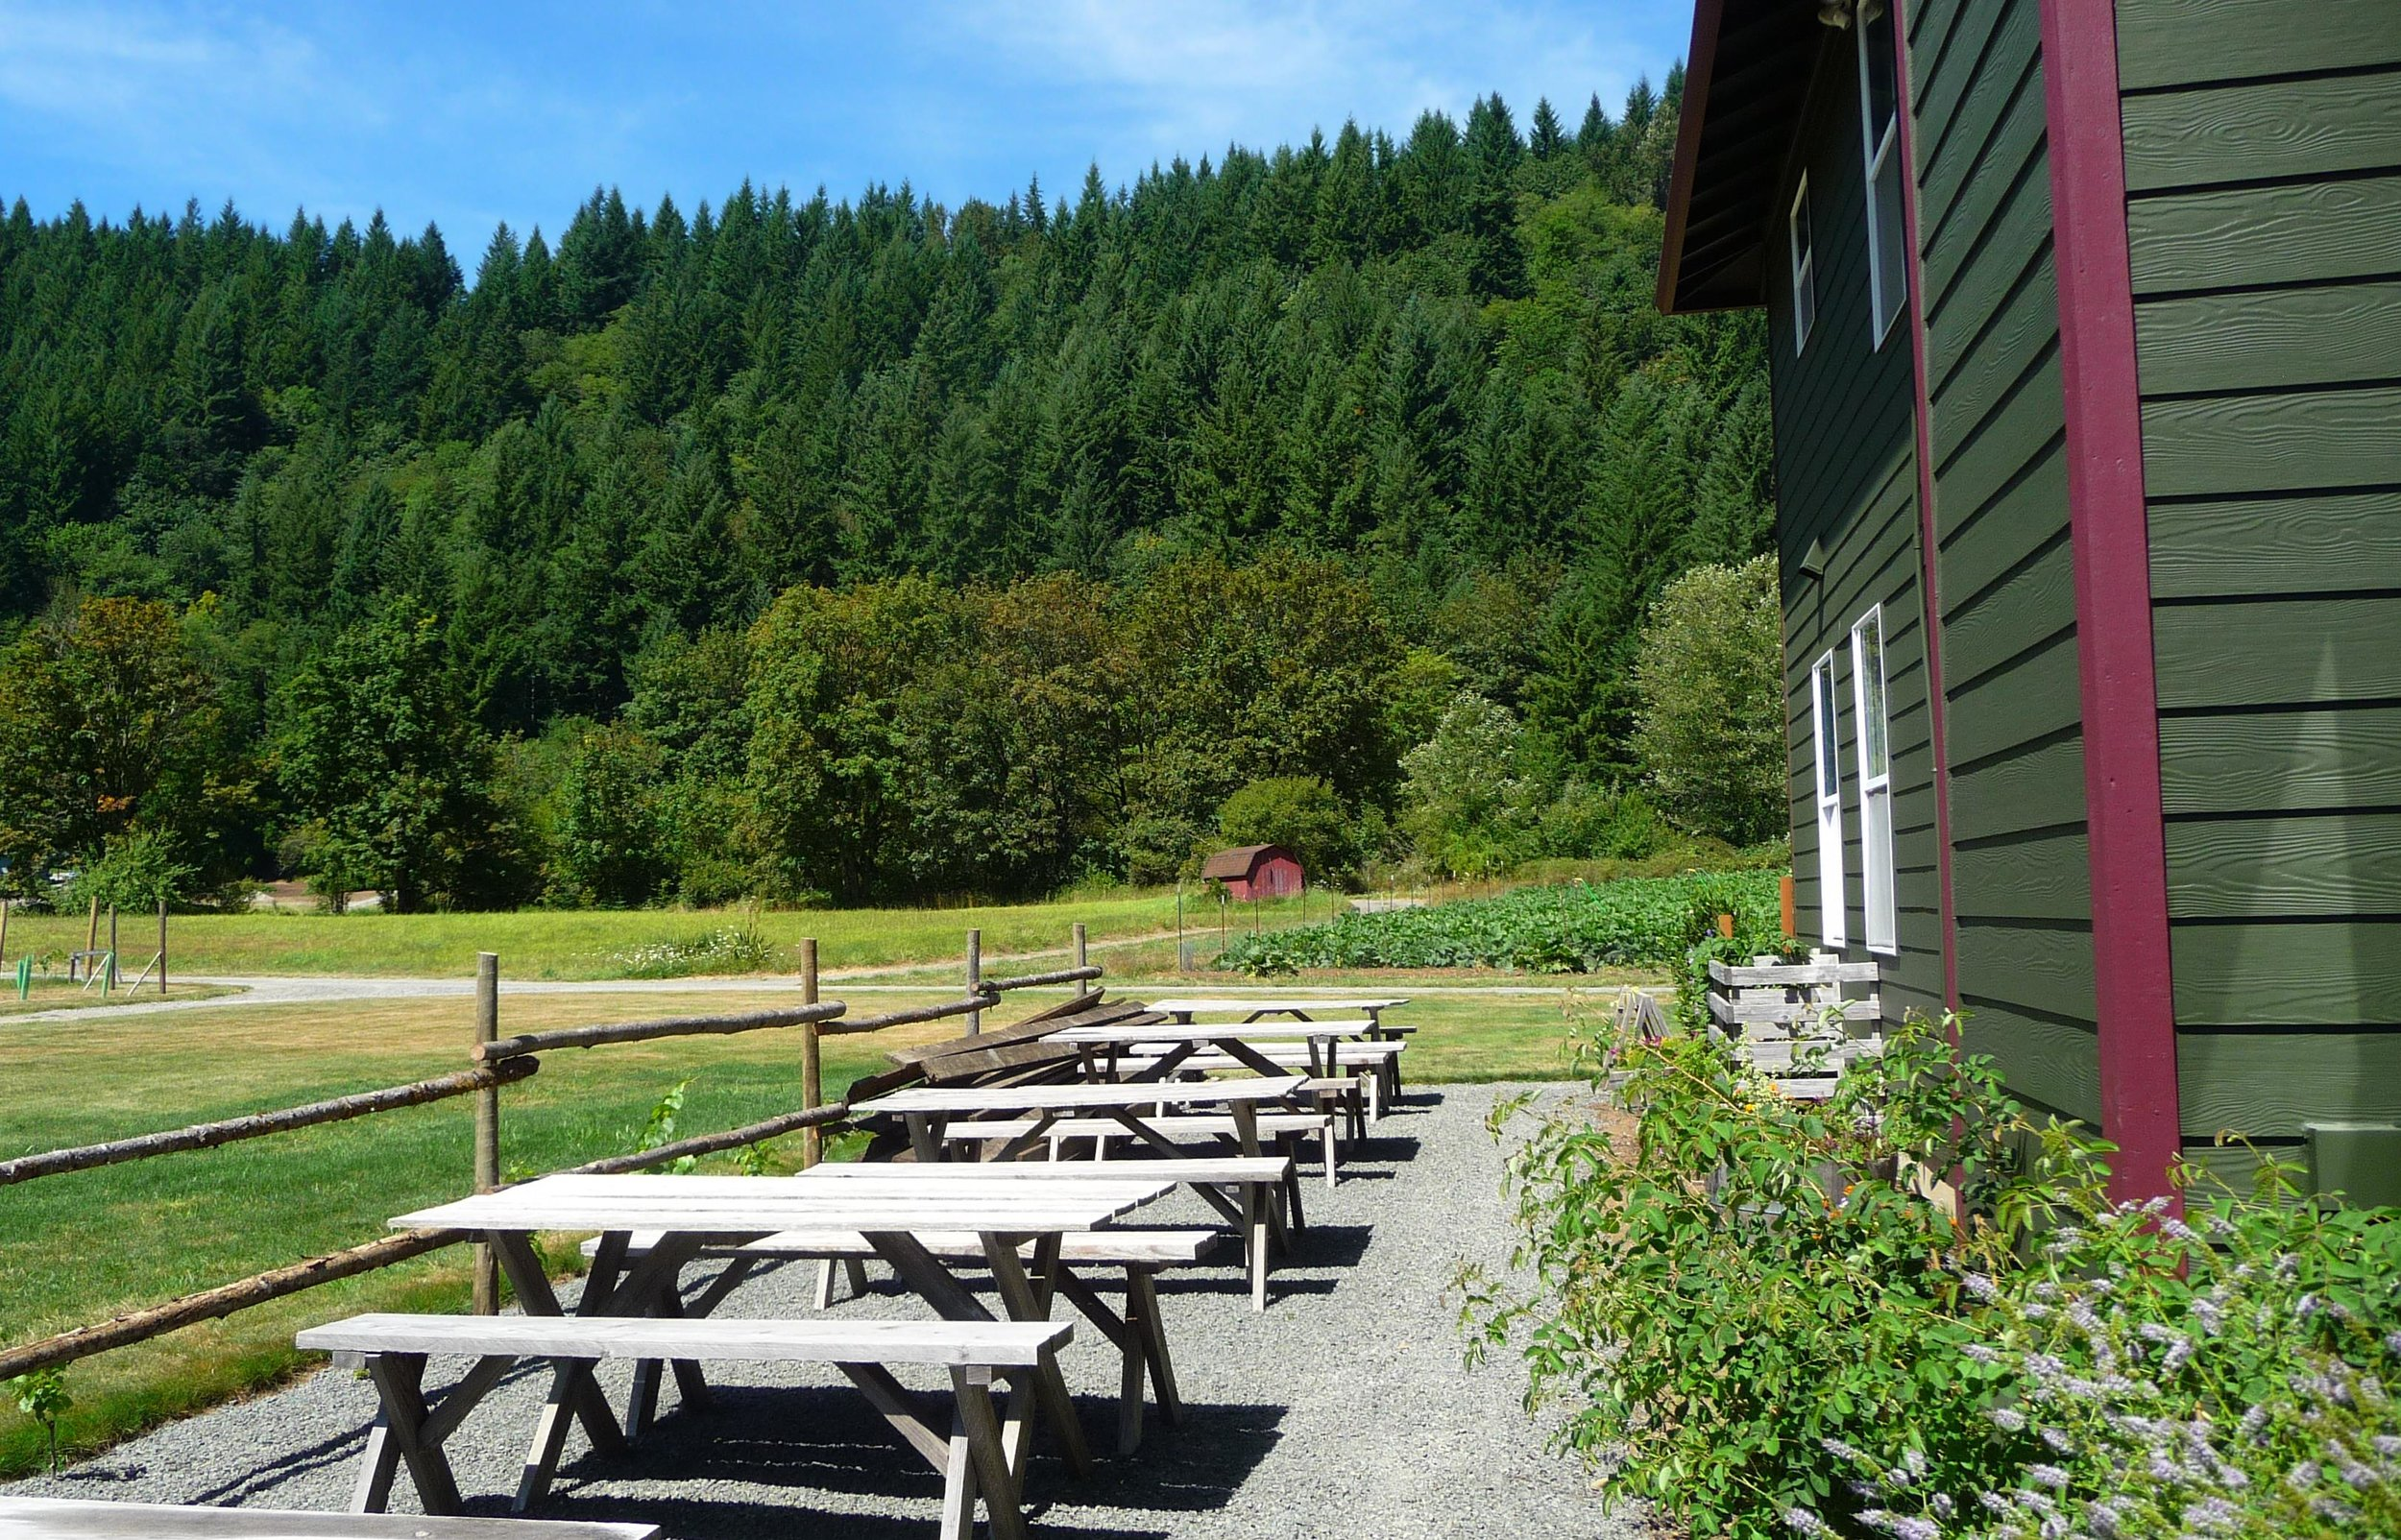 Inviting outdoor seating greets visitors to Pomeroy Cellars - near Lucia Falls Park and Moulton Falls Winery